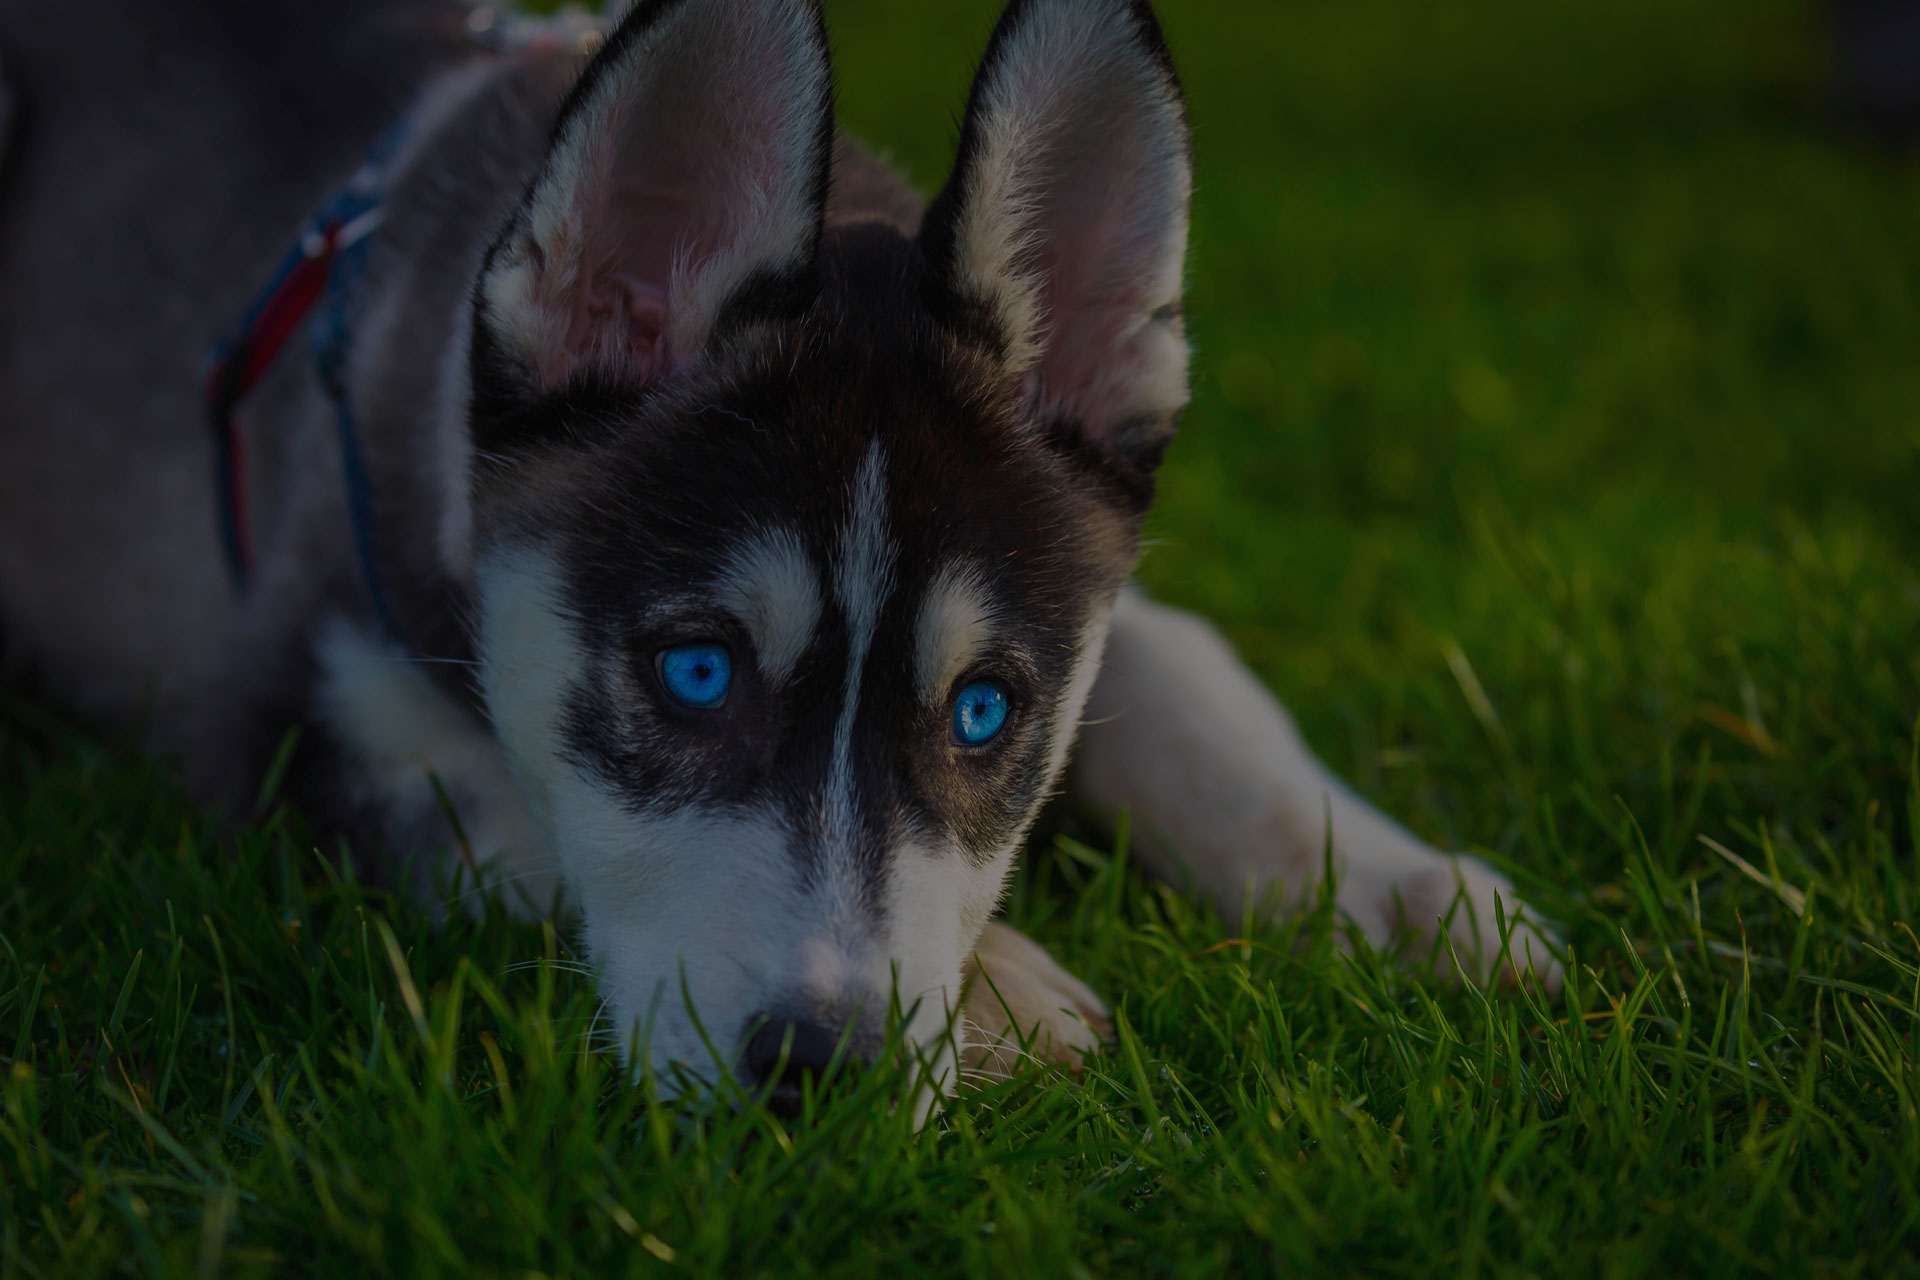 Adorable black and white with blue sleepy eyes Husky puppy lying on grass